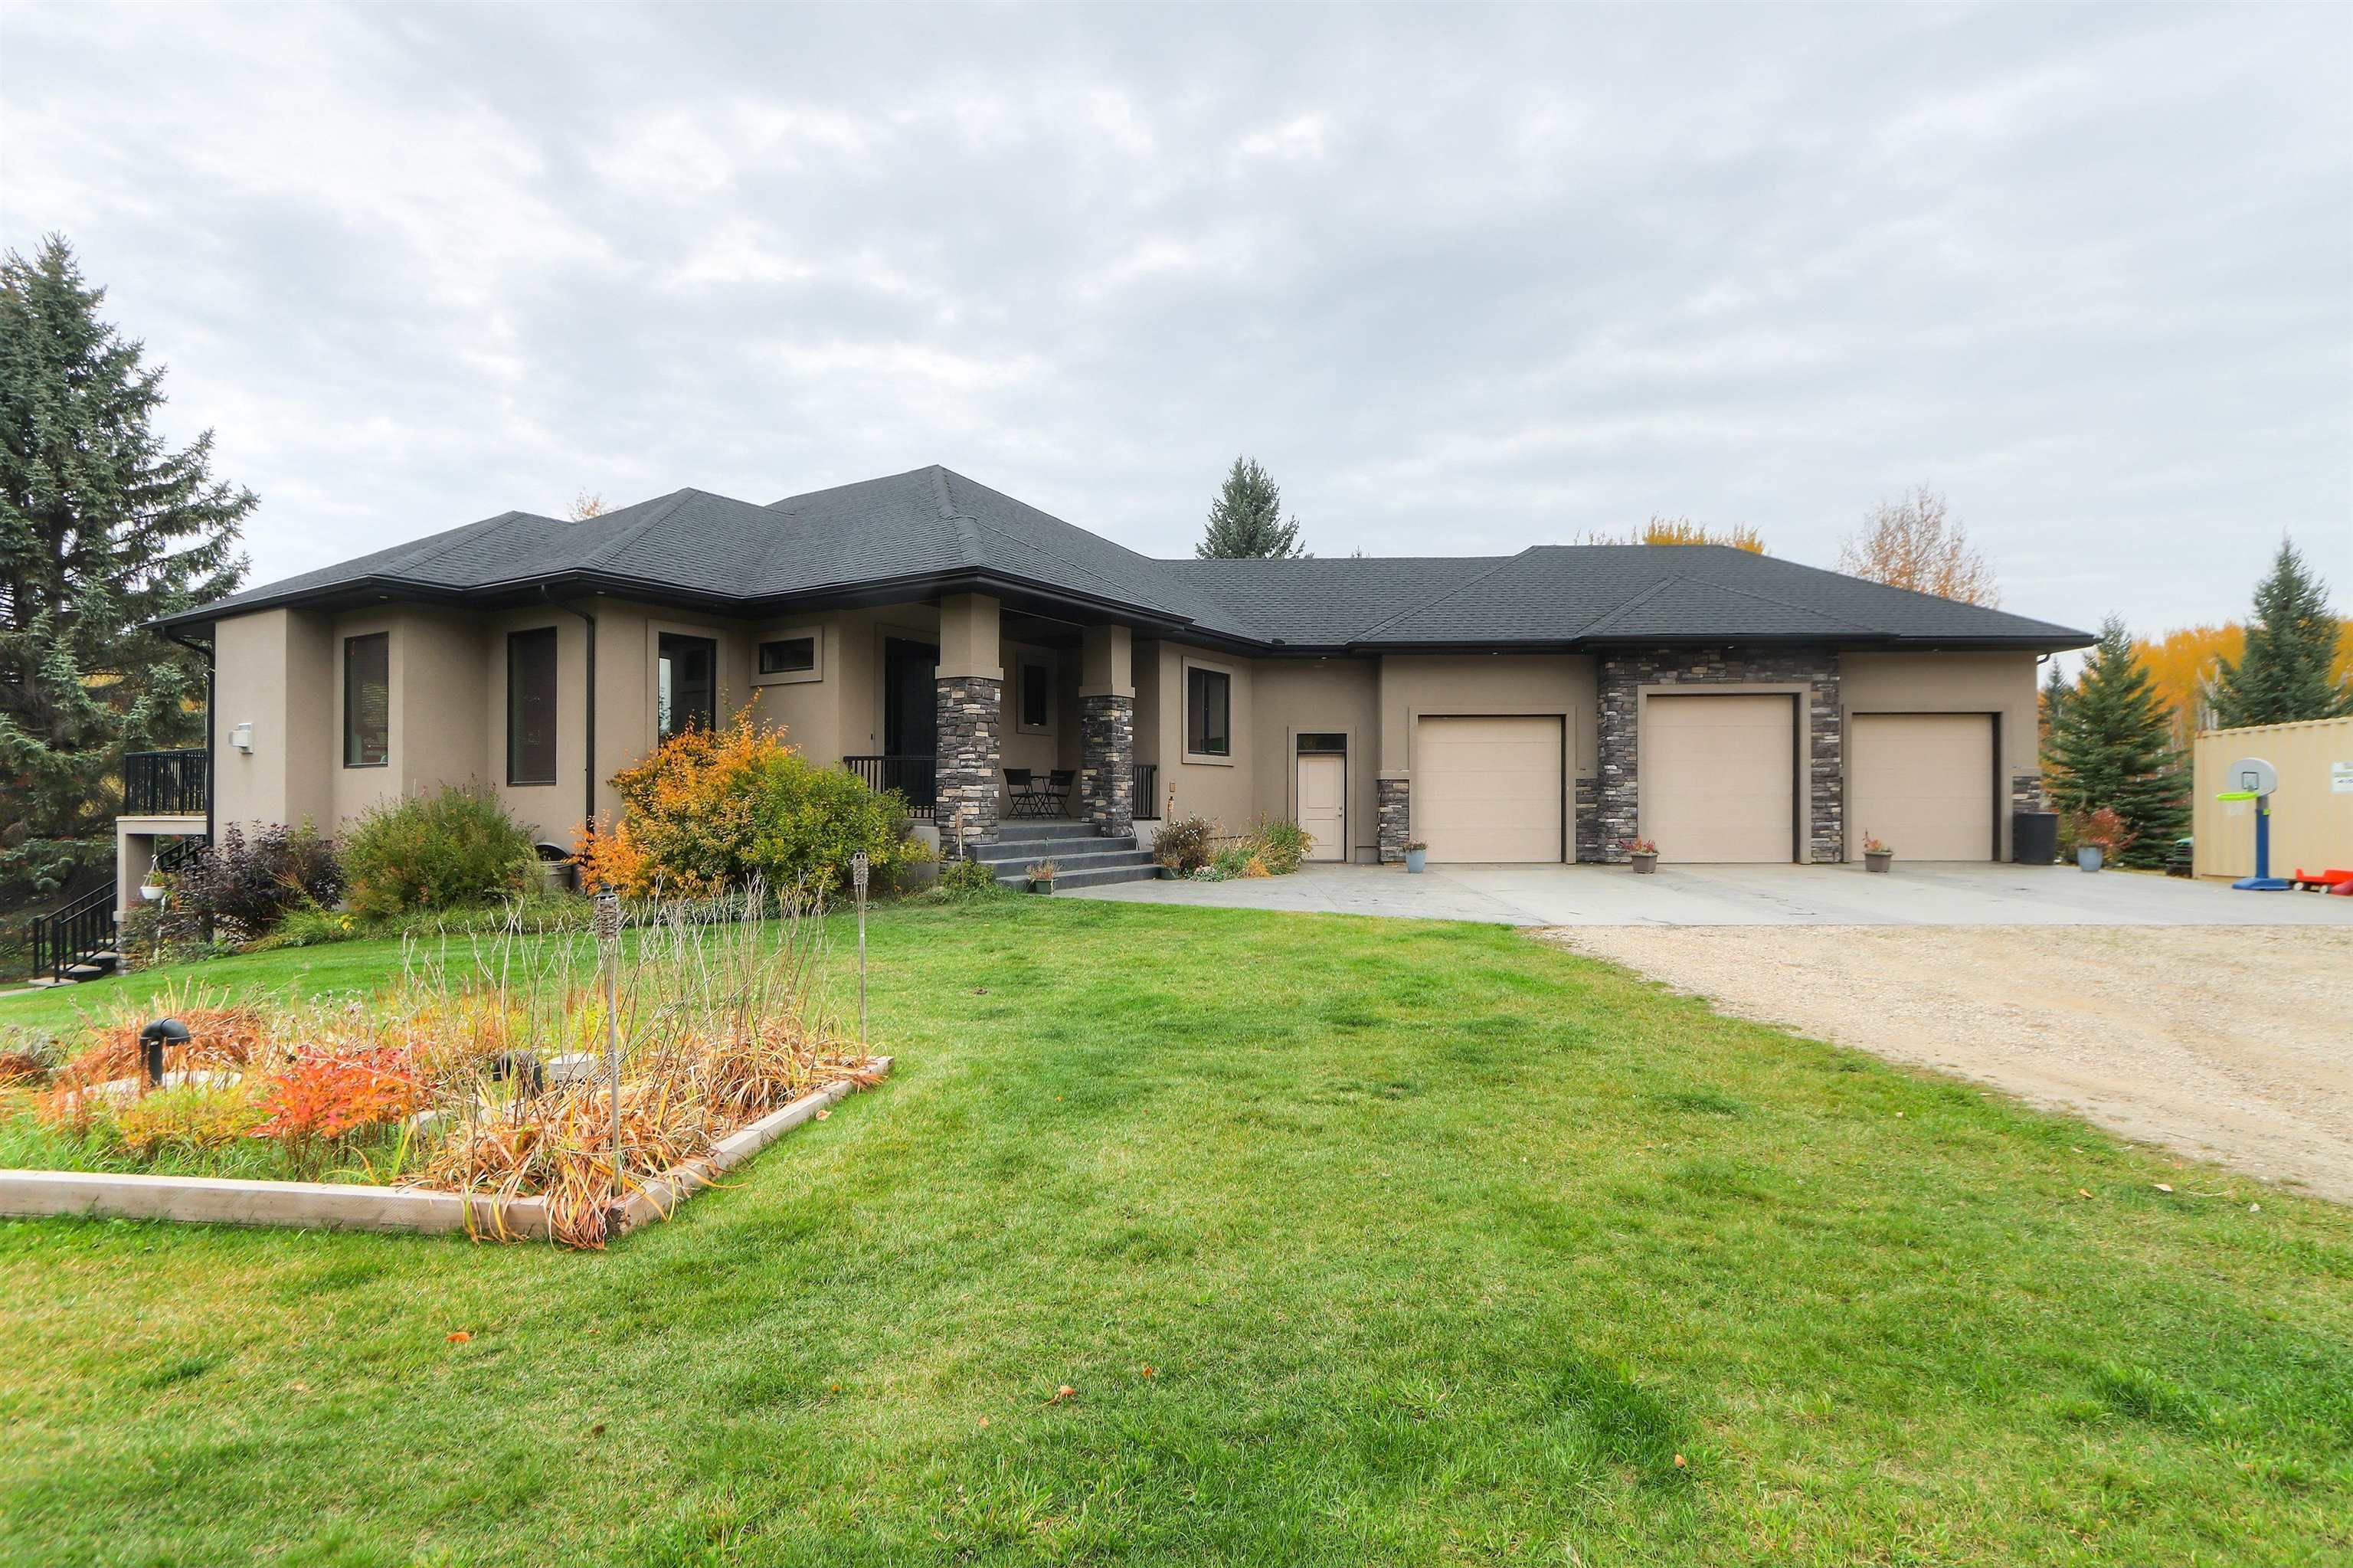 Main Photo: 74 53103 RGE RD 14: Rural Parkland County House for sale : MLS®# E4265668